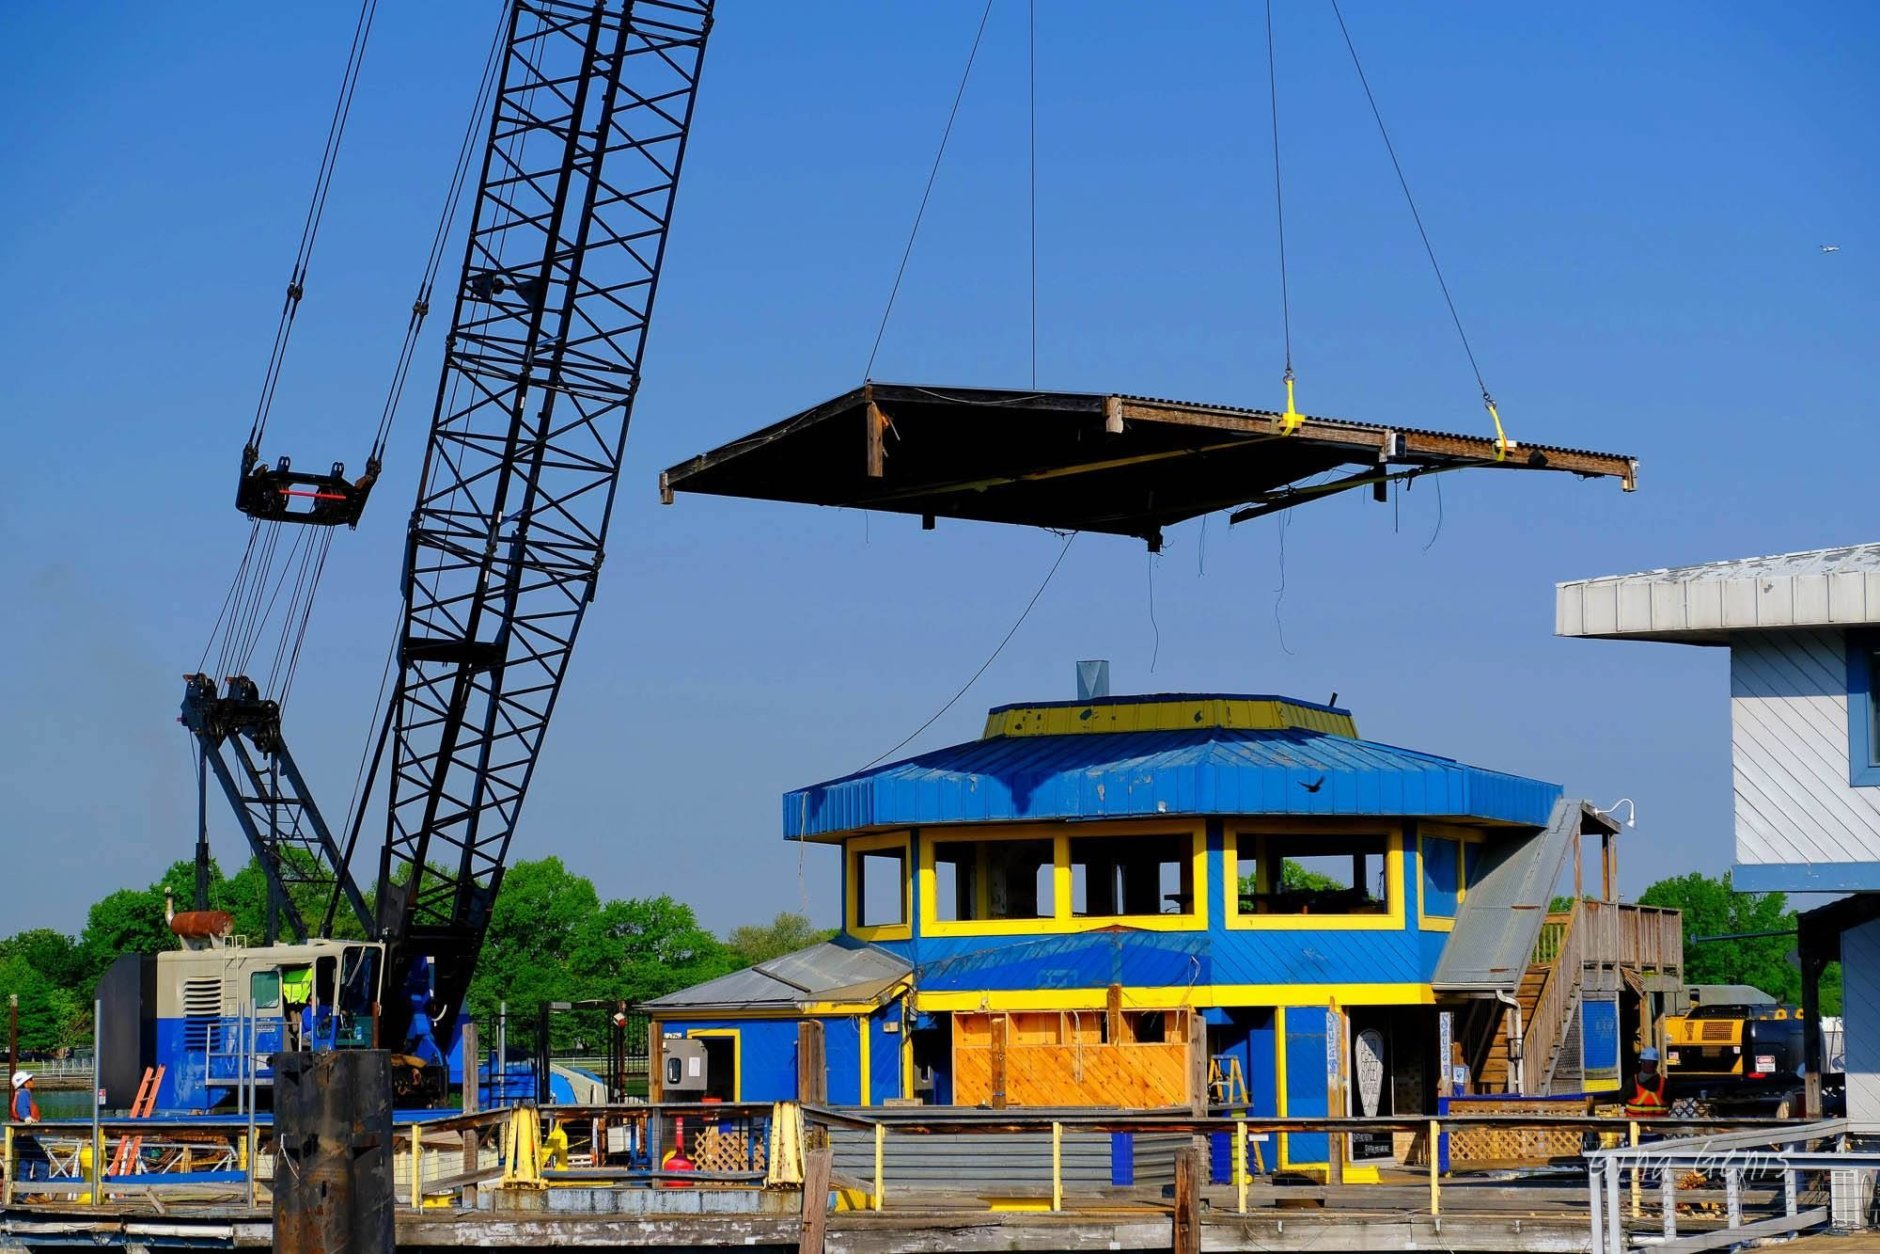 Demo teams lift the roof of the Cantina Marina up and away on Tuesday, May 8 2018. (Courtesy Gina Genis)